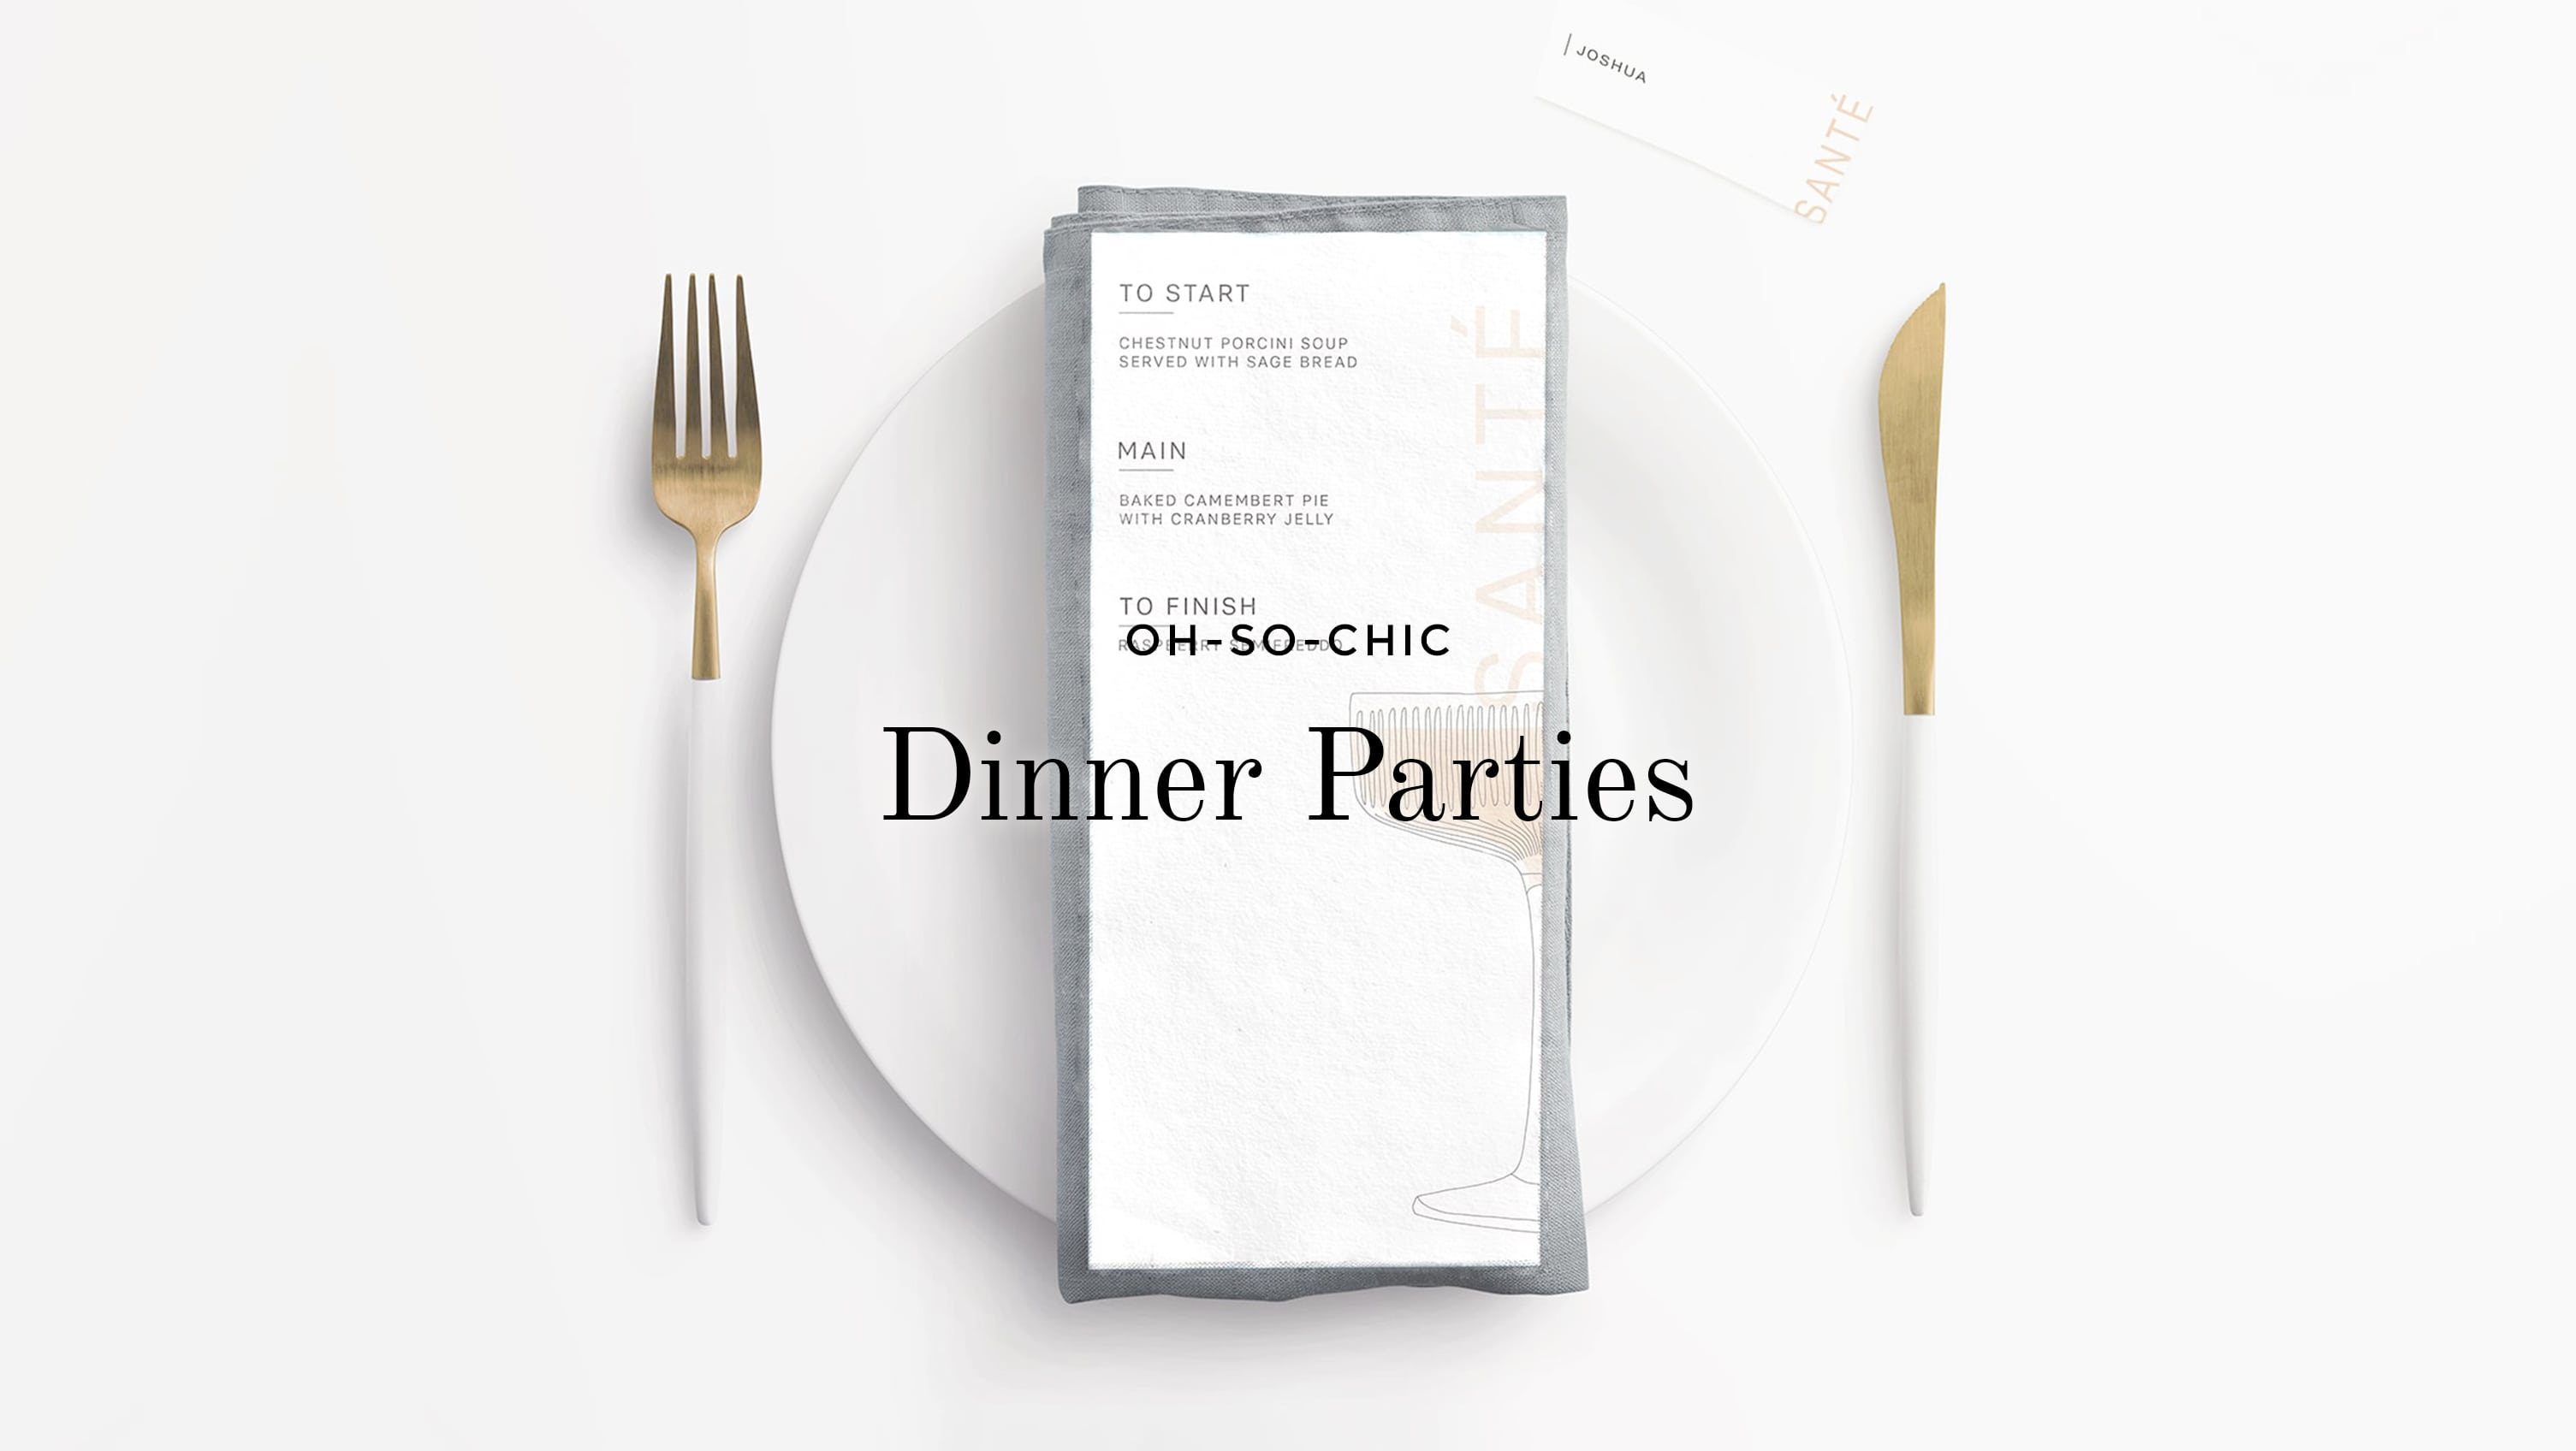 Free-Noama-Menu-Cards-And-Name-Cards-For-Dinner-Parties